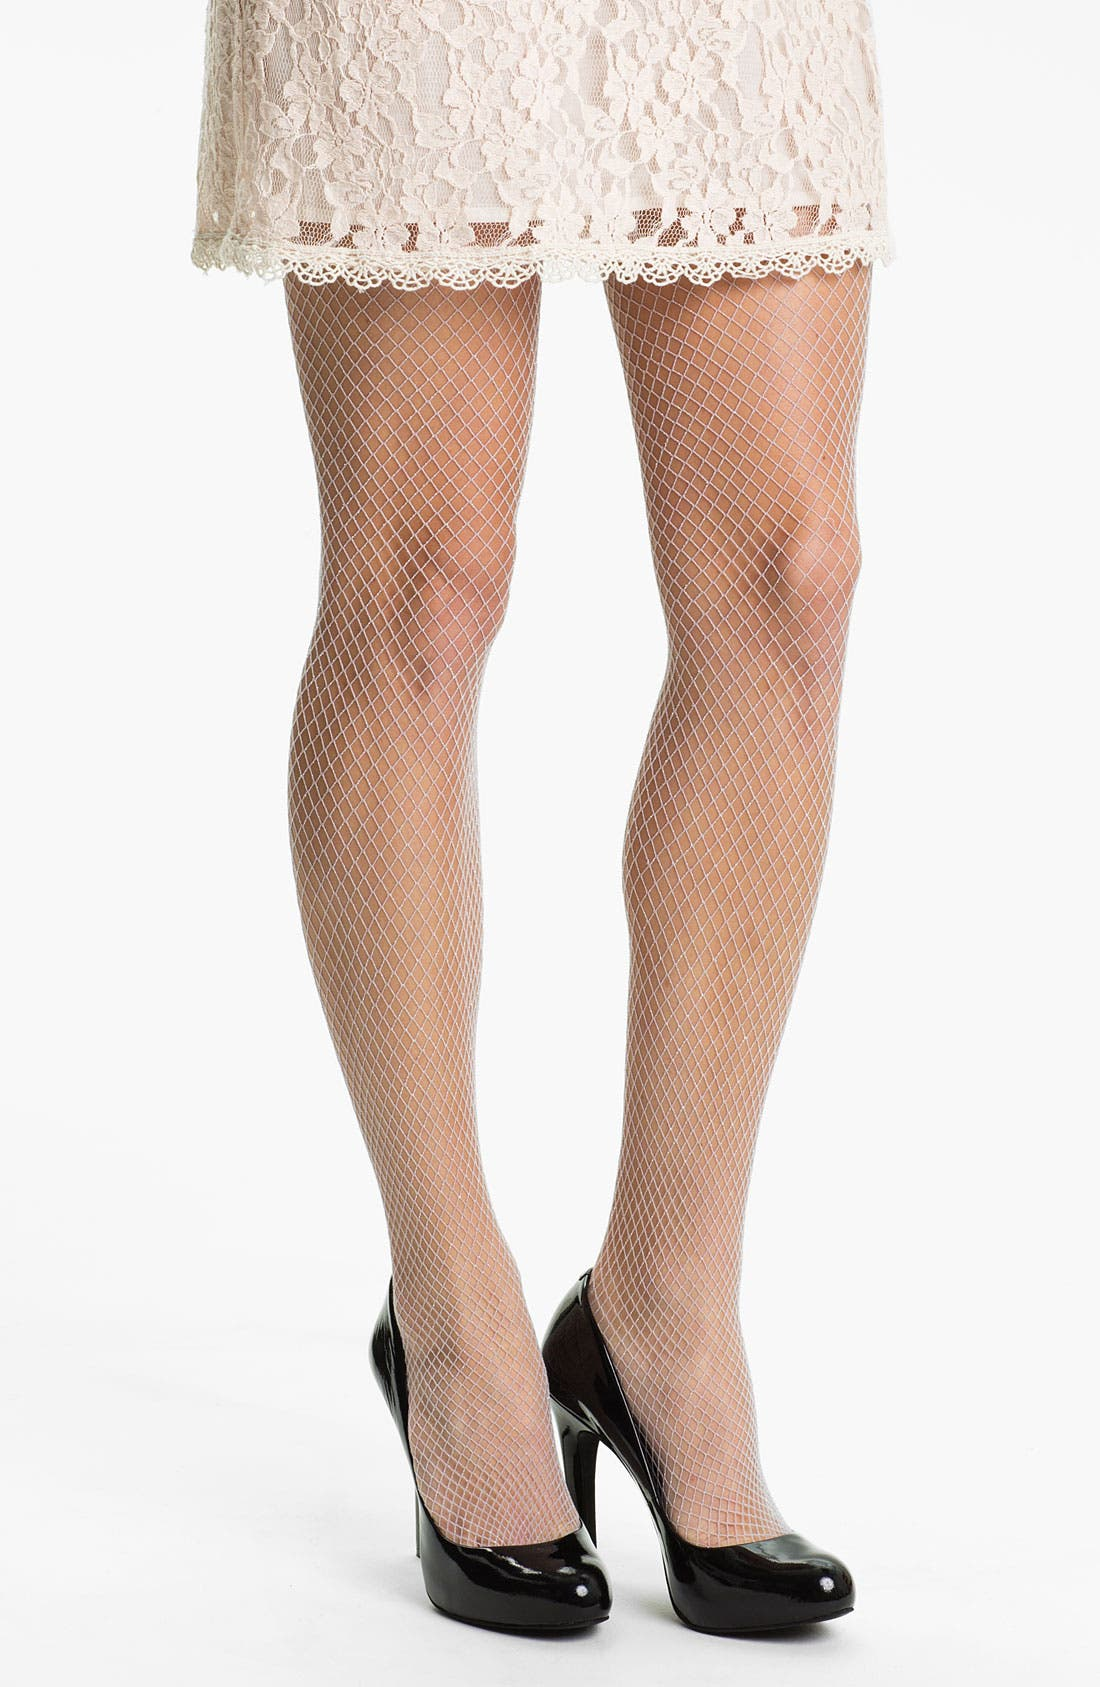 Alternate Image 1 Selected - Nordstrom 'Shine' Fishnet Tights